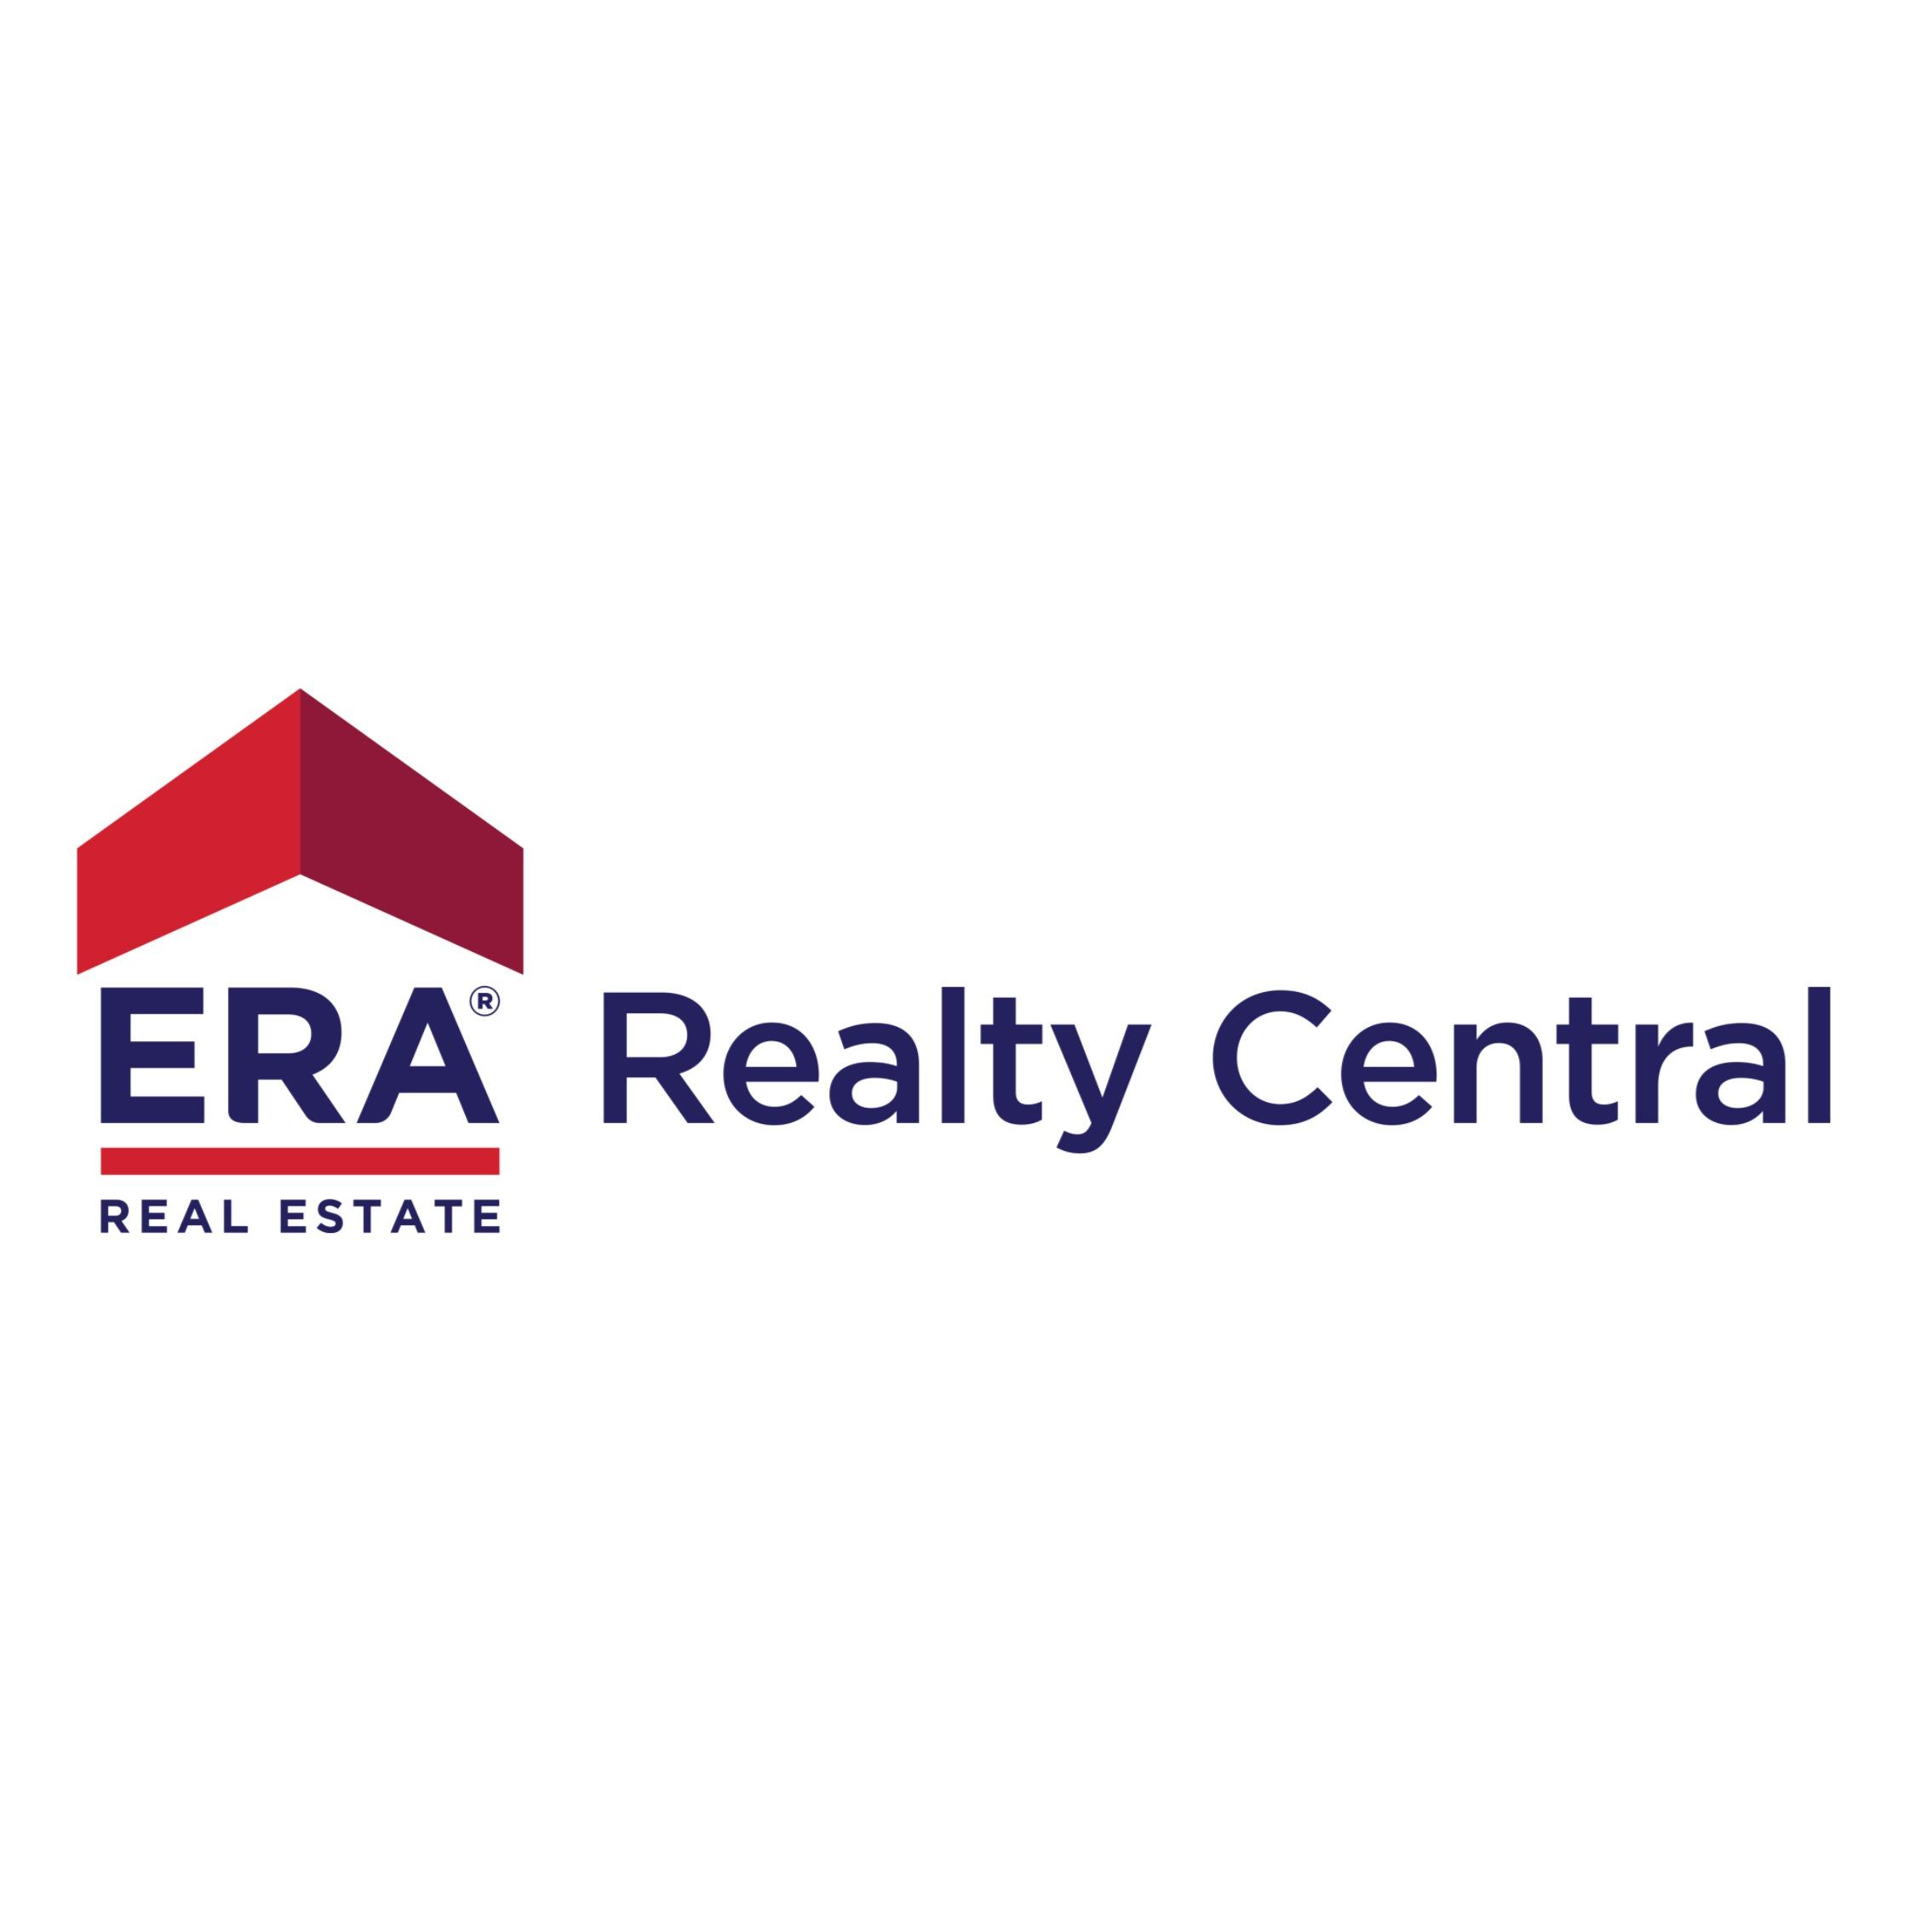 Rosemary Loven Realtor/ERA Realty Central